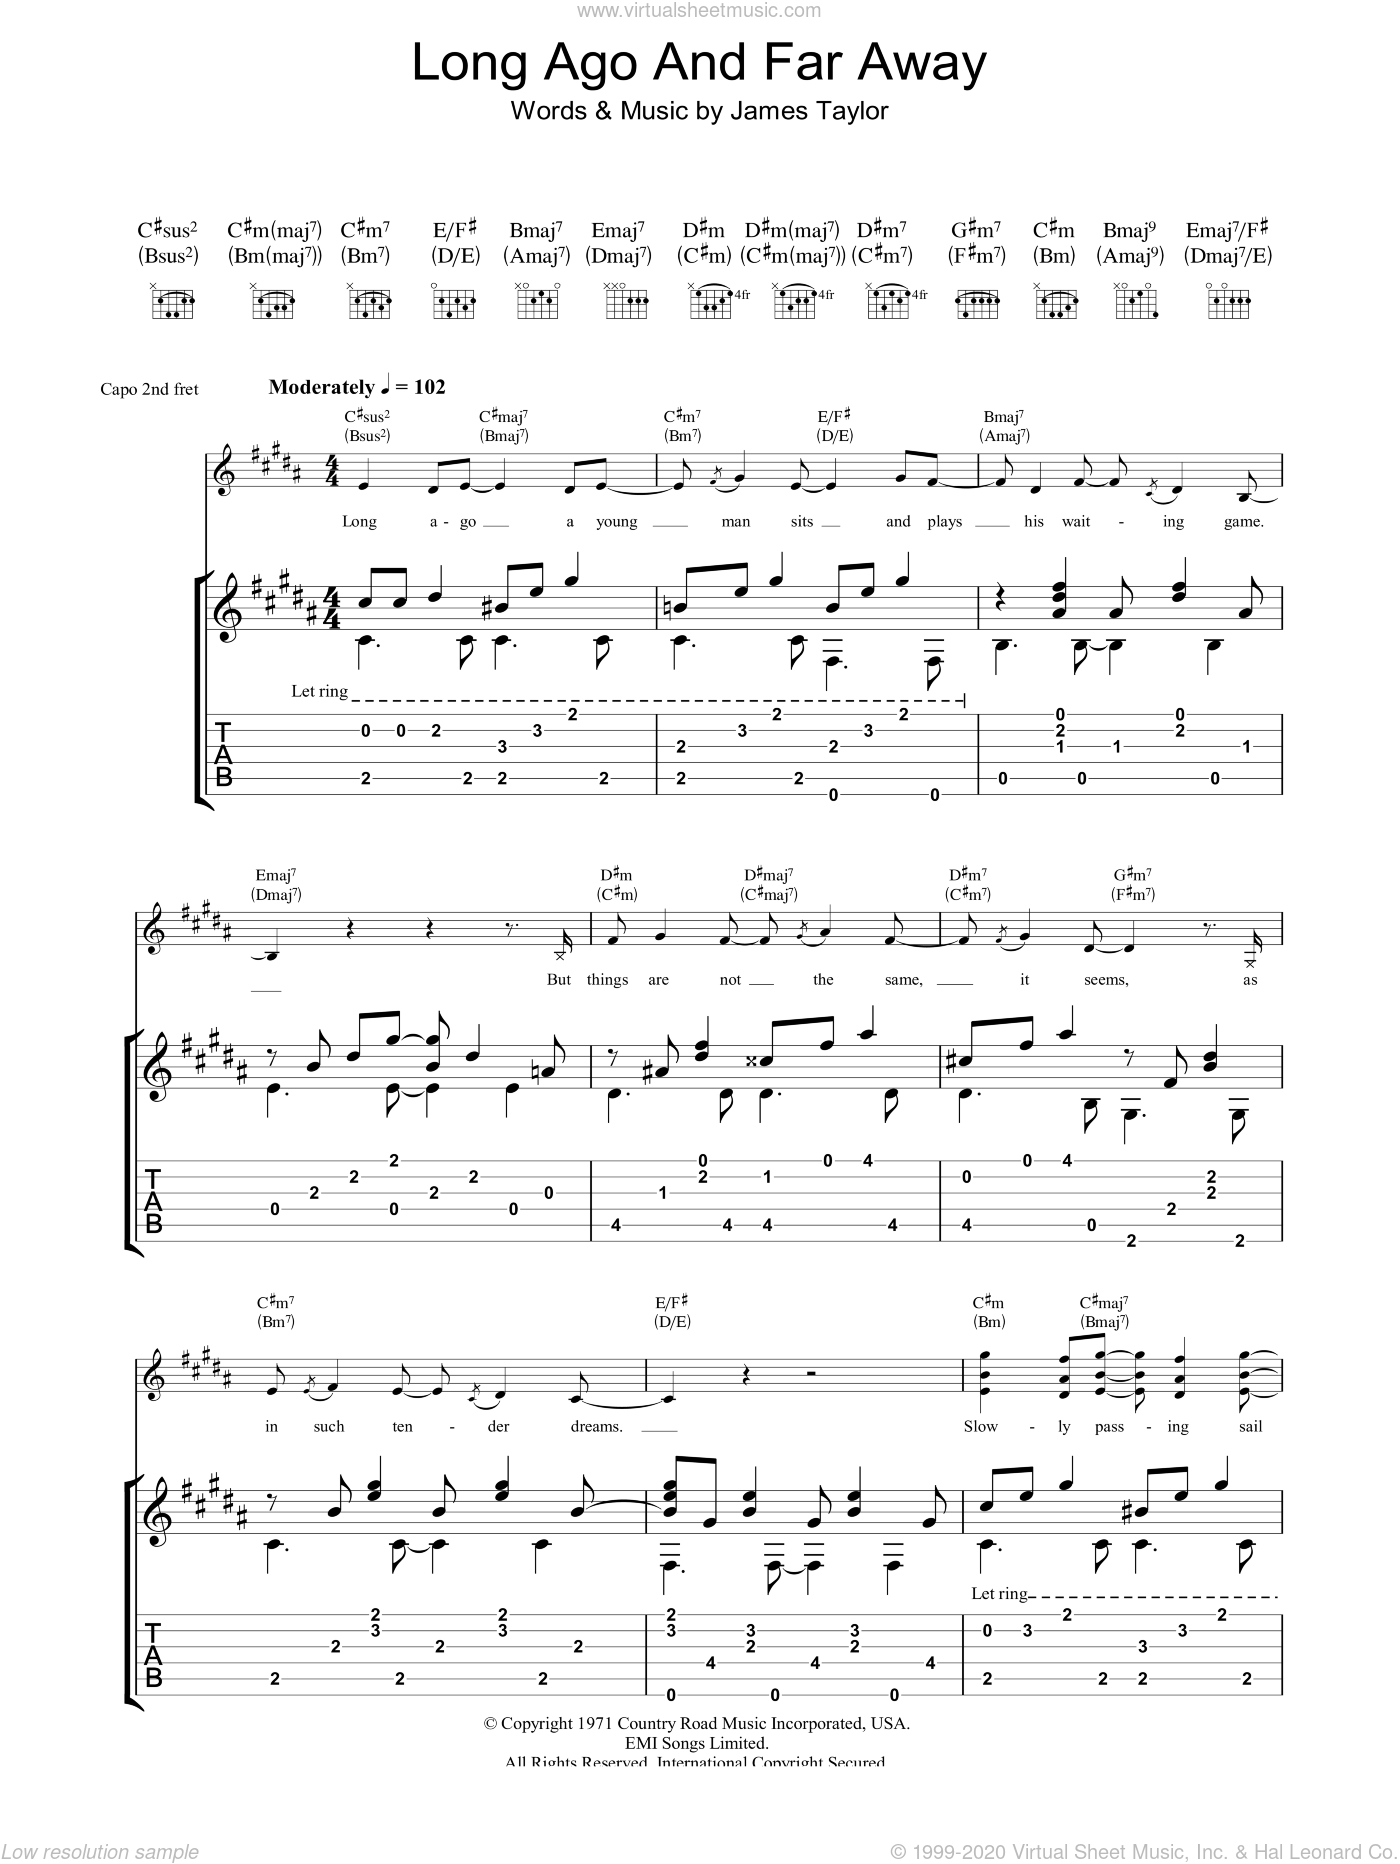 Long Ago And Far Away sheet music for guitar (tablature) by James Taylor